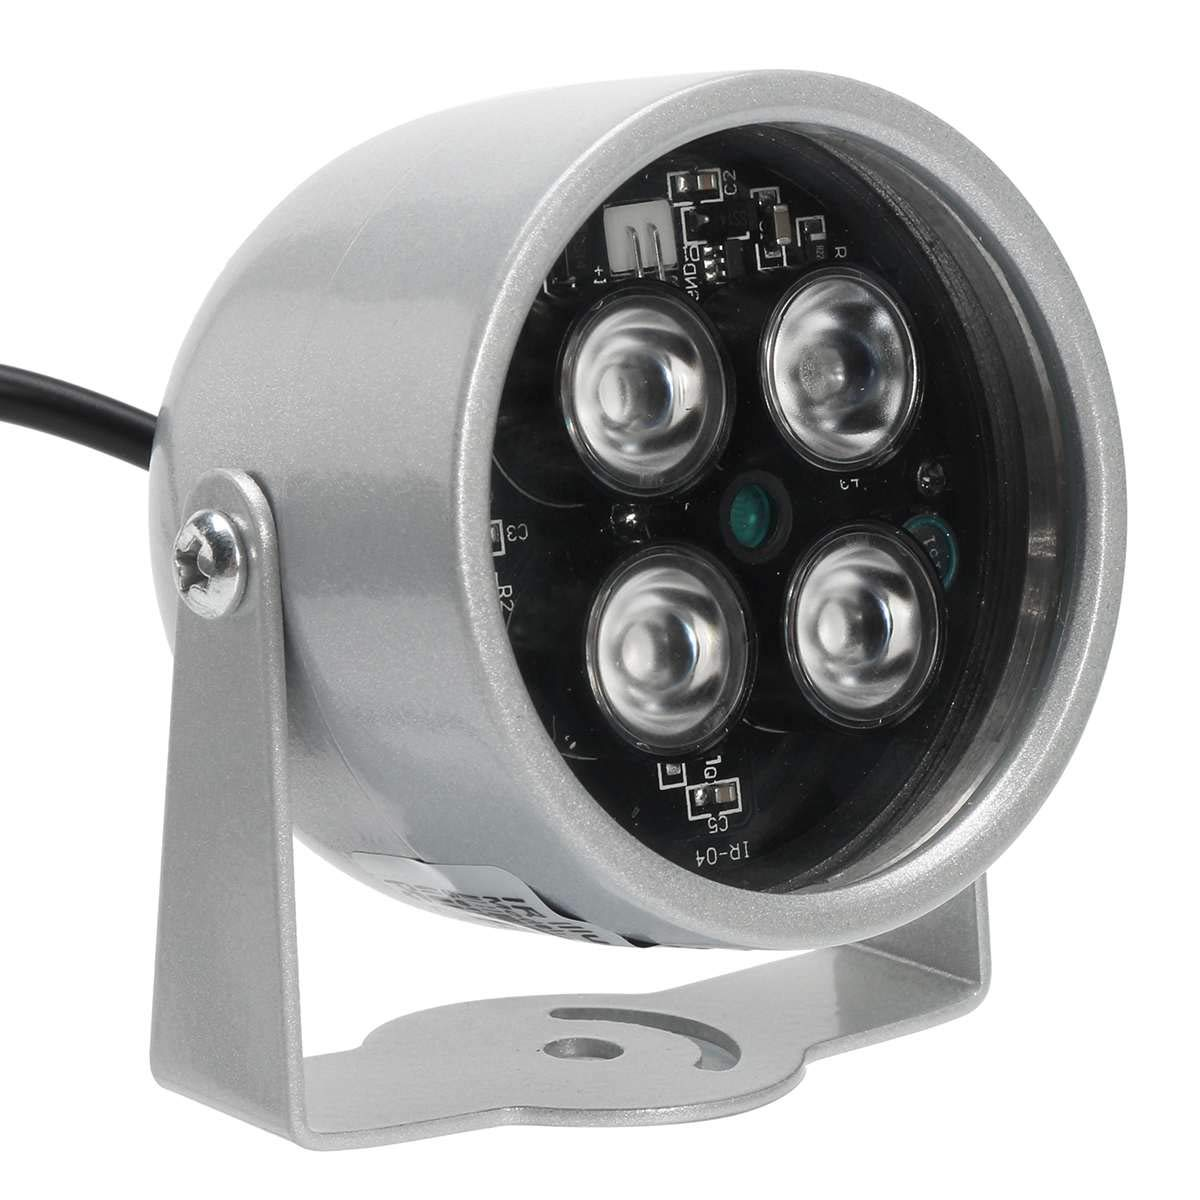 SMALL-CHIPINC - 850nm 3W Wide Angle 4 LED light Illuminator For Security CCTV Camera Adjustable IP66 Waterproof CCTV Fill Light Accessories by SMALL-CHIPINC